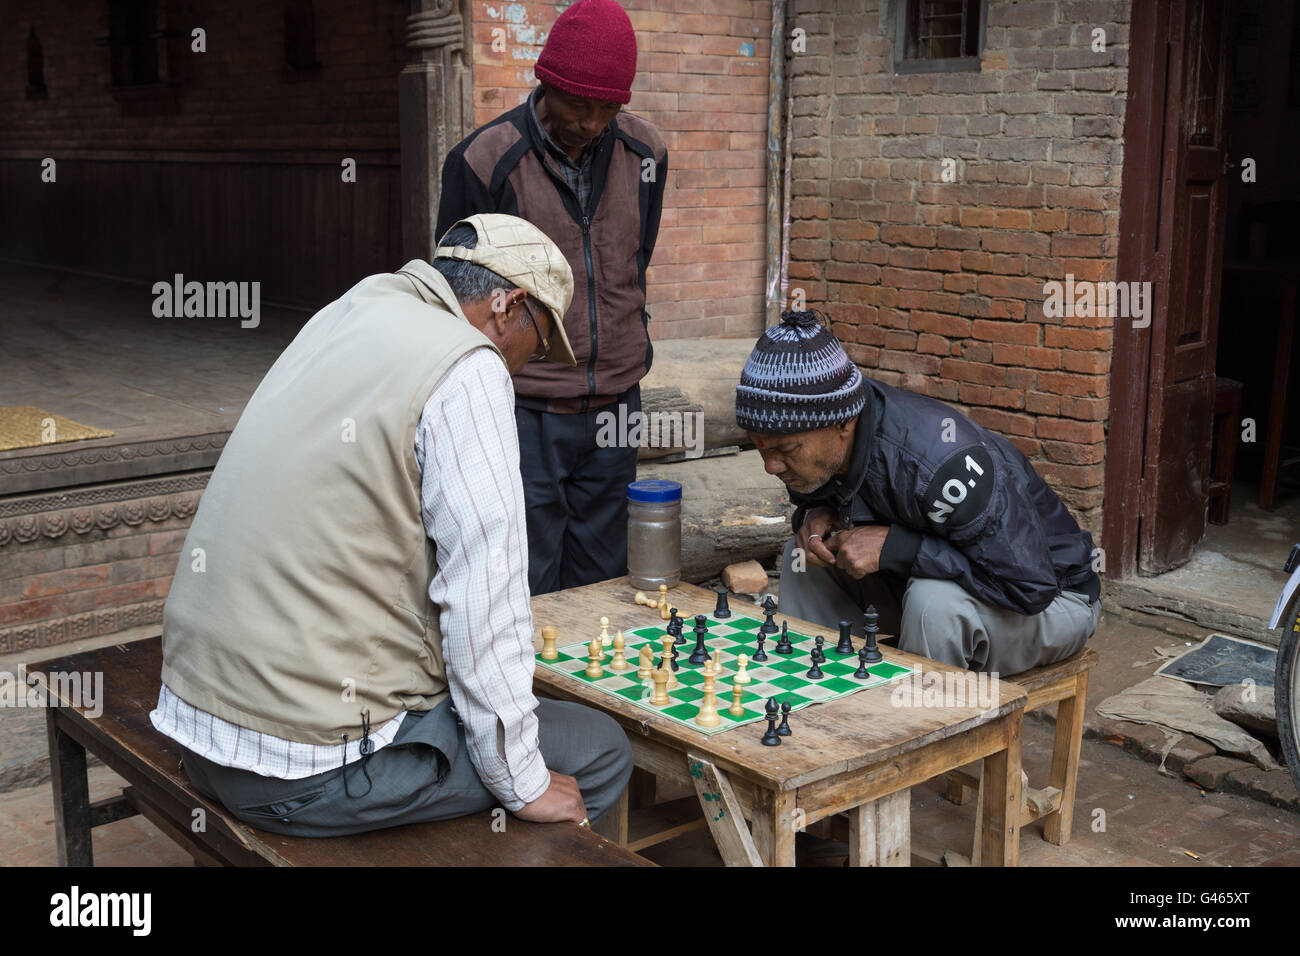 Bhaktapur, Nepal - December 5, 2014: Elderly men playing chess in the streets. - Stock Image